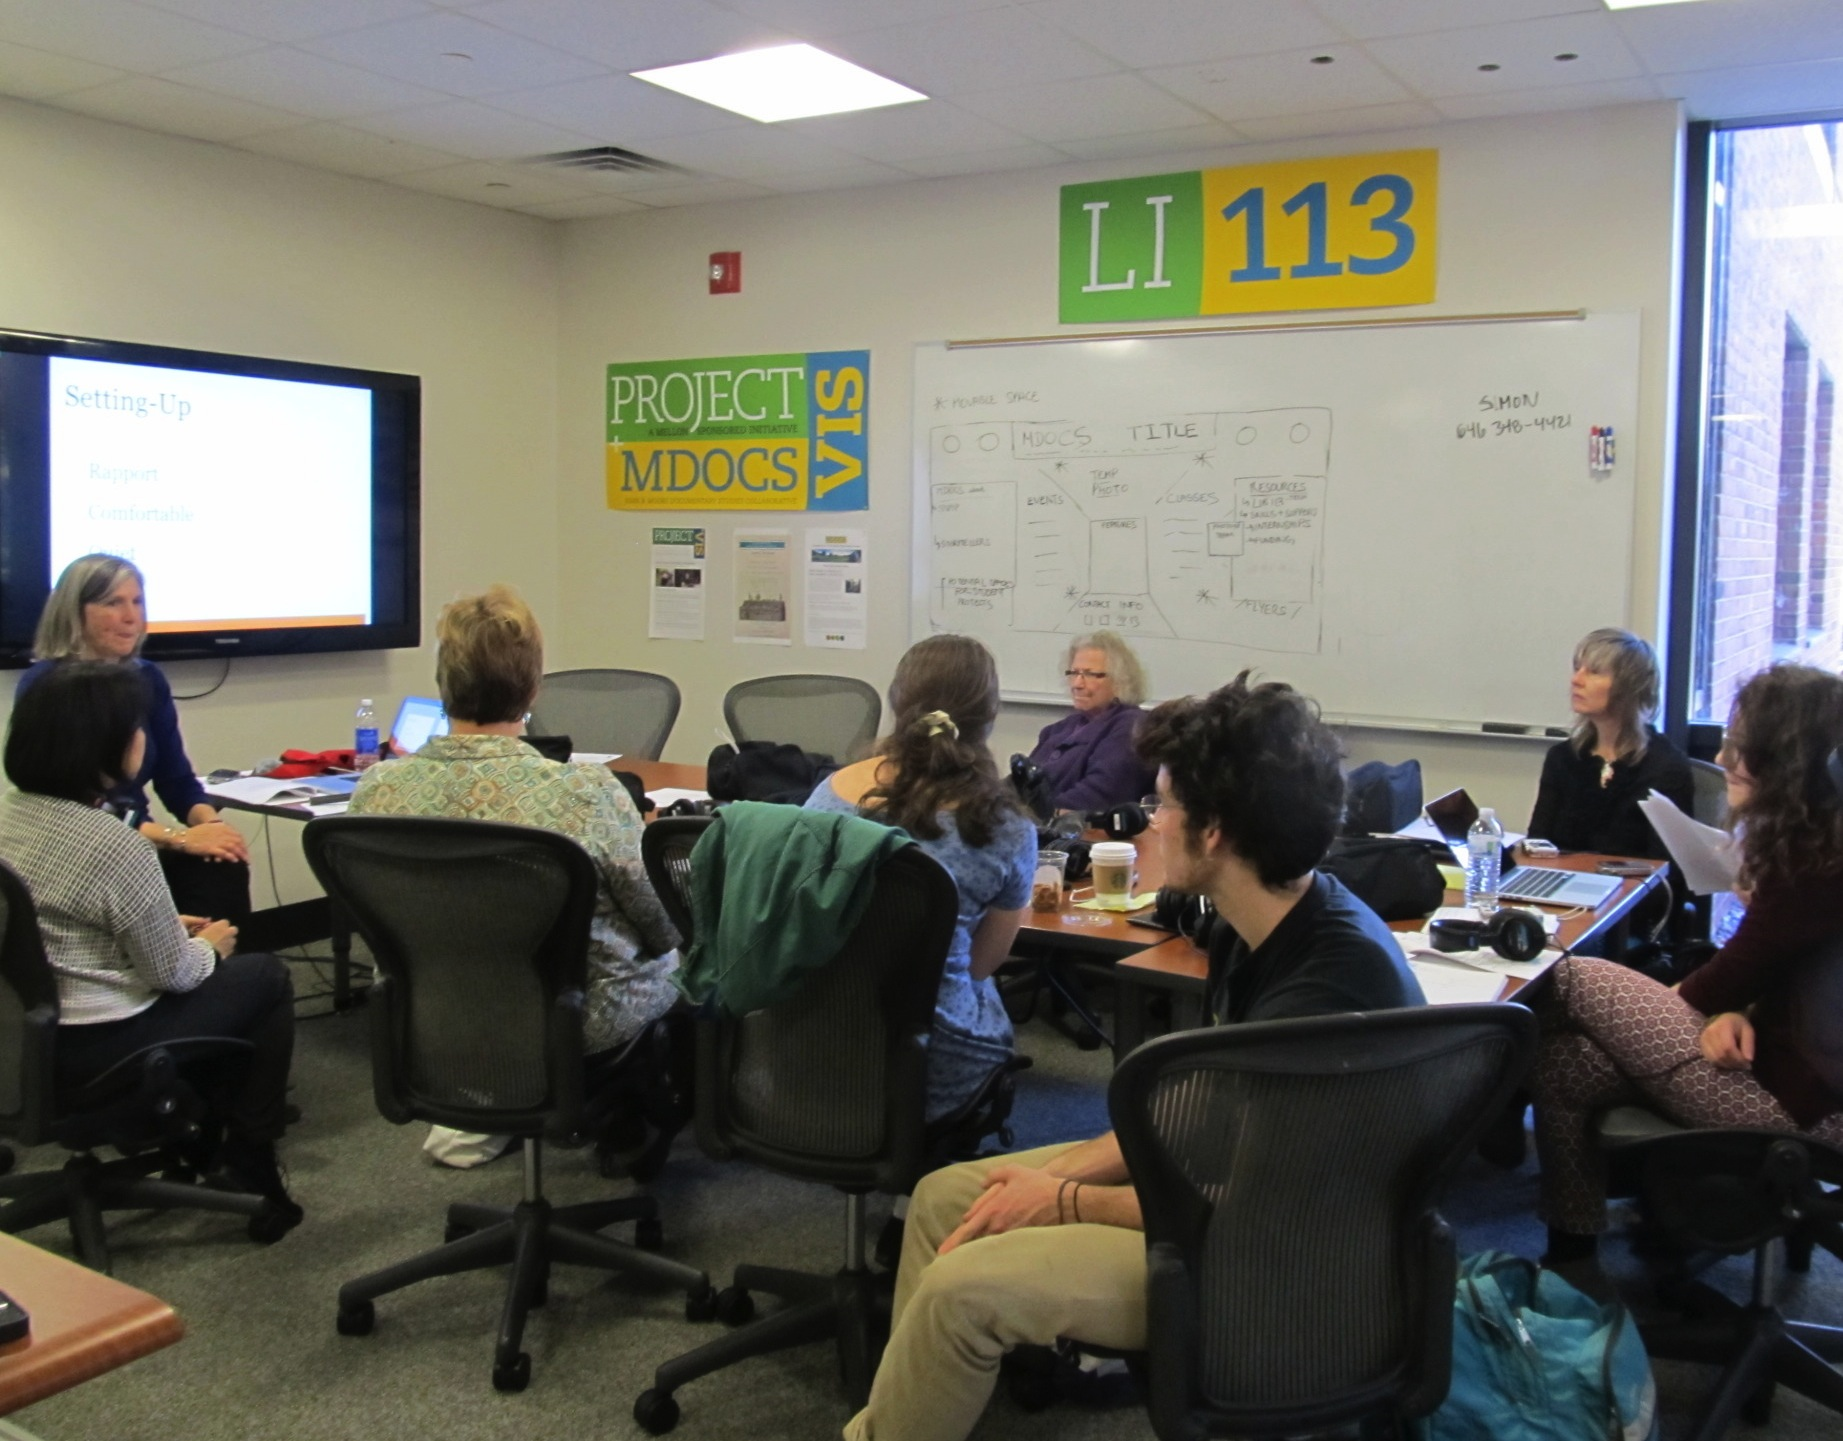 LI 113 A Workshop (McAdam, 10/2014)